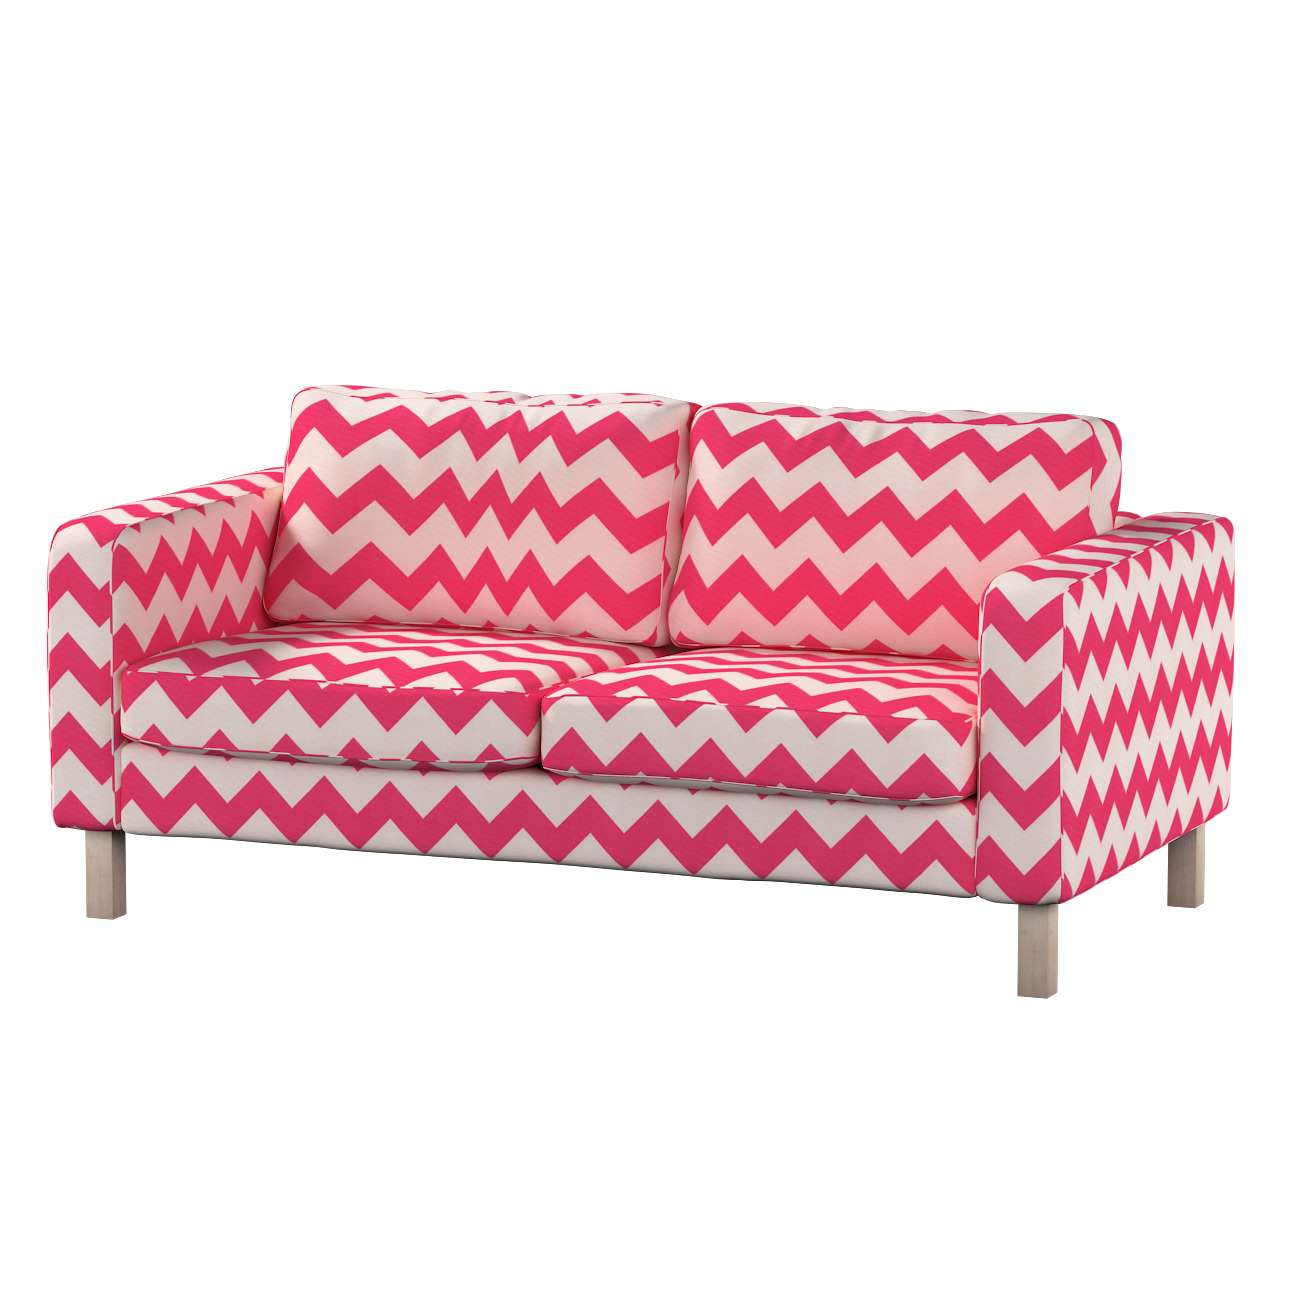 Karlstad 2-seater sofa cover in collection Comics/Geometrical, fabric: 135-00